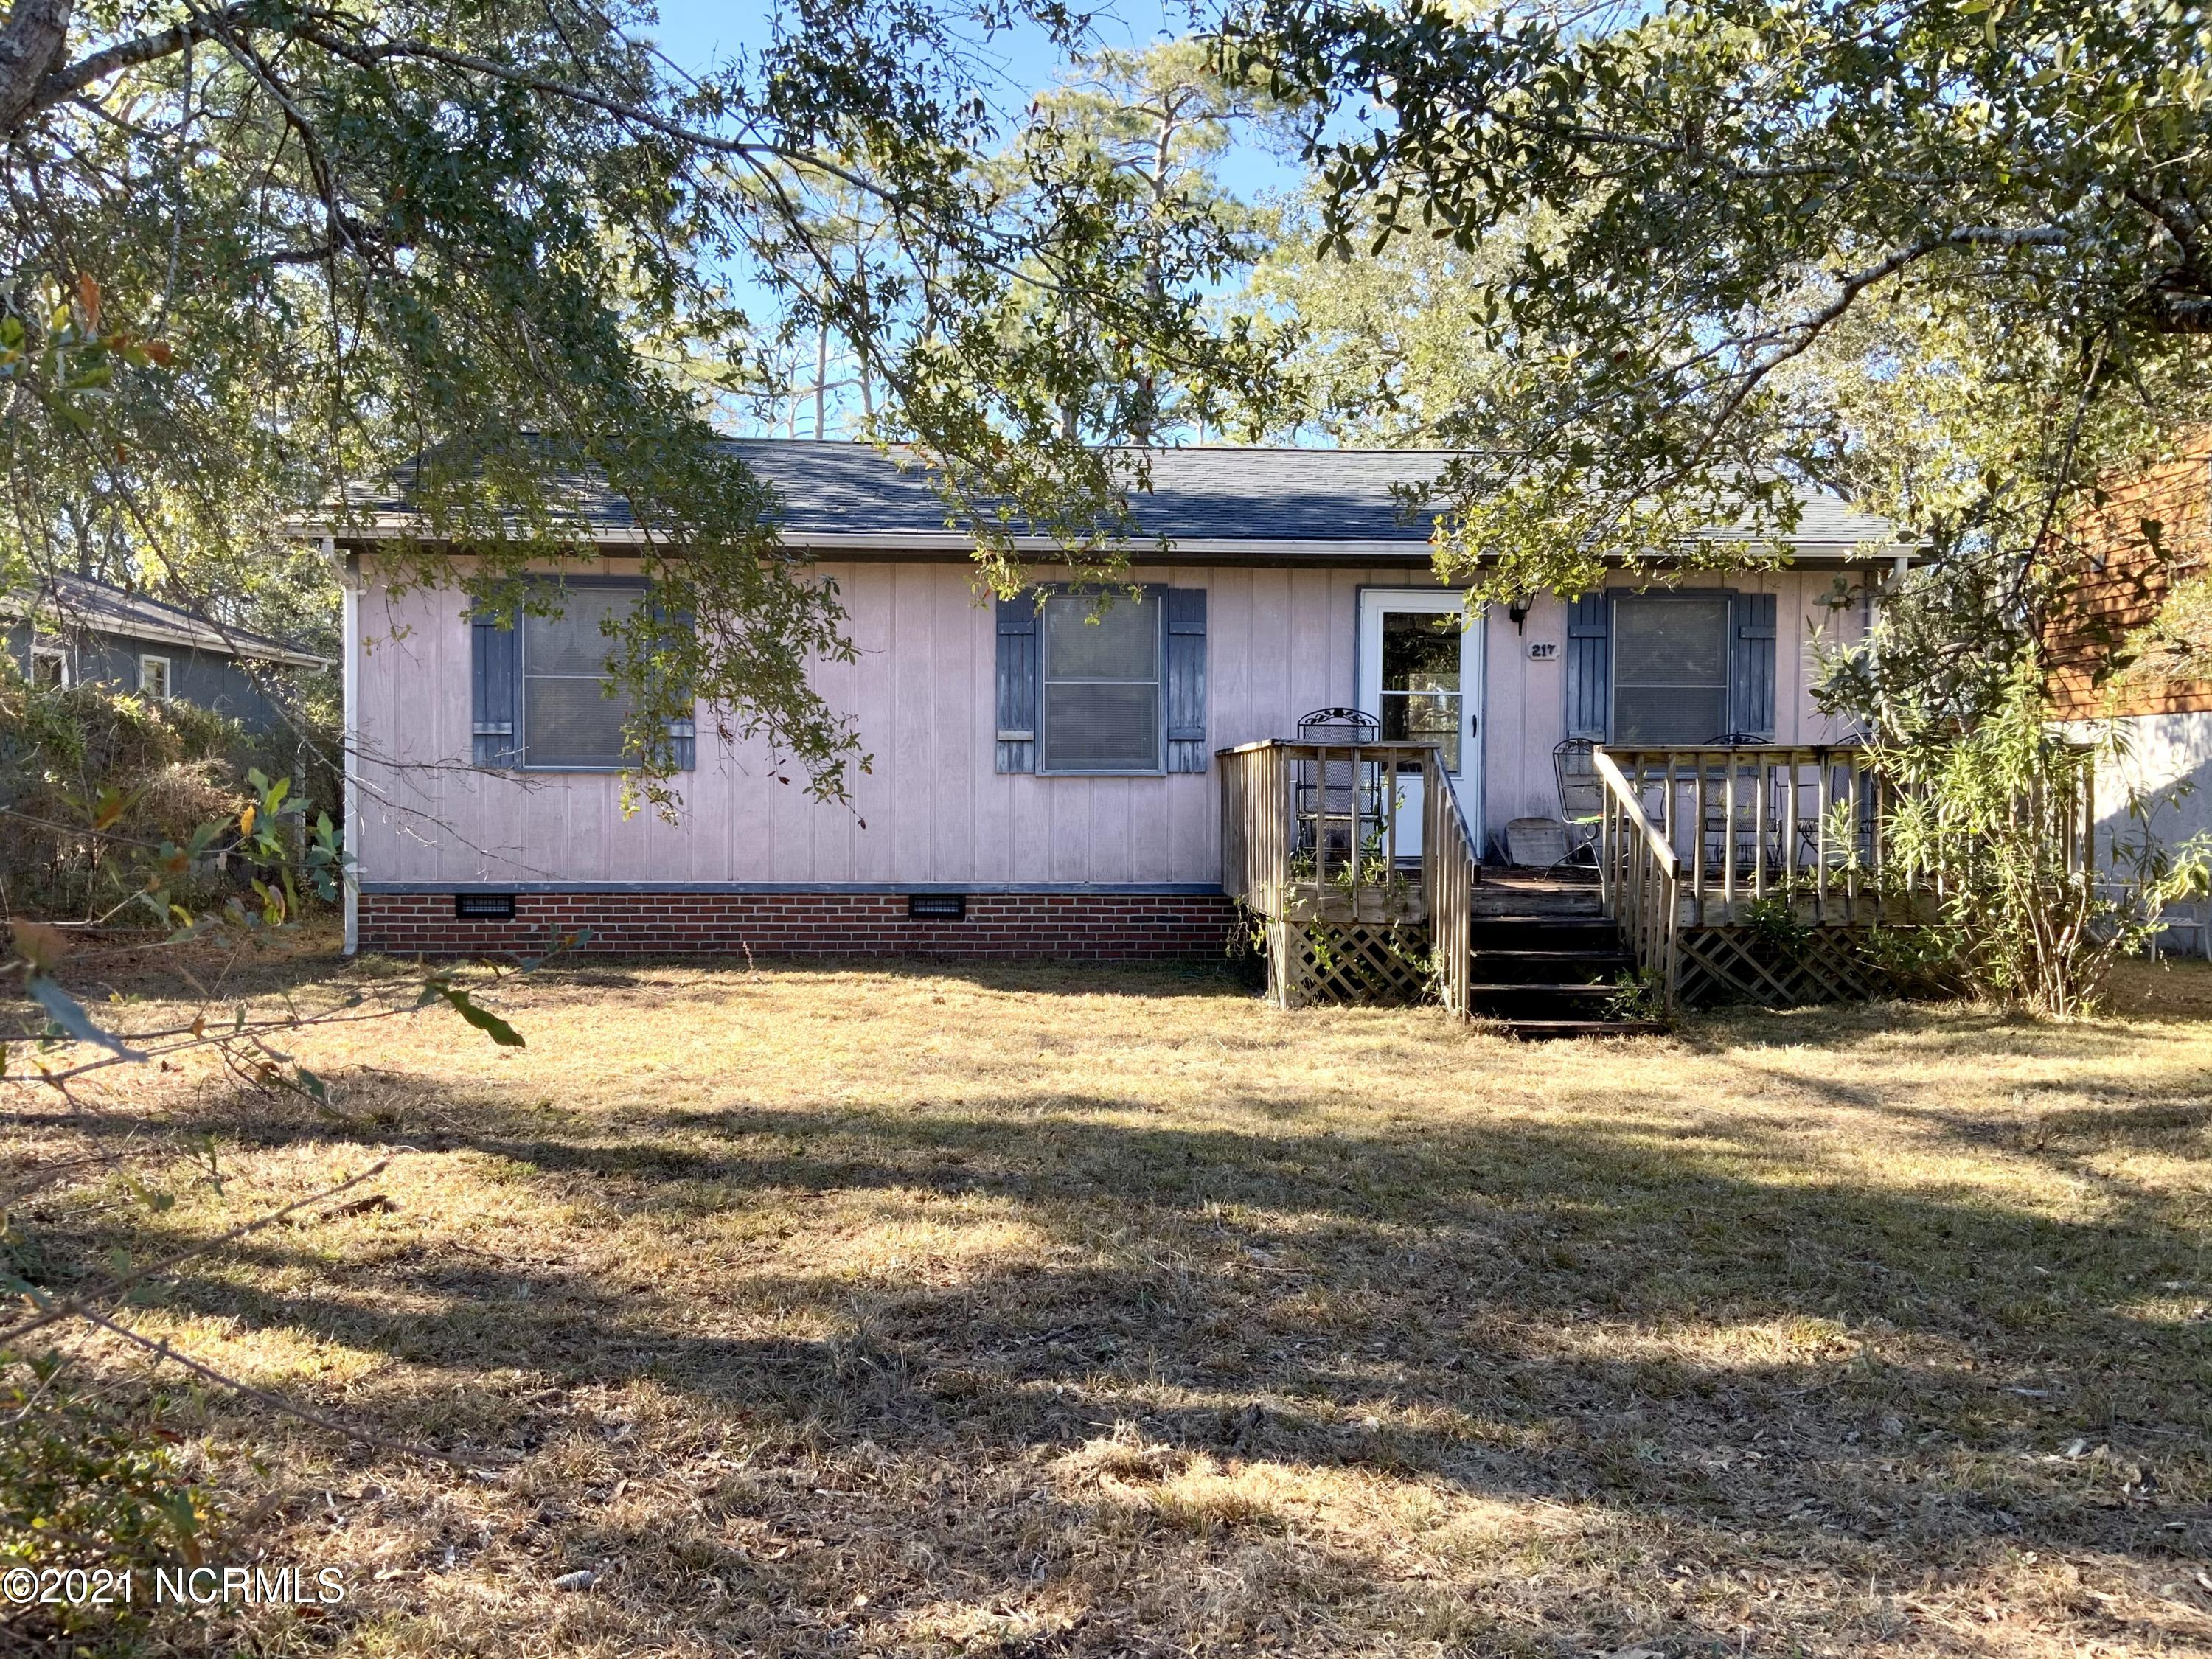 217 NE 47th Street Oak Island, NC 28465